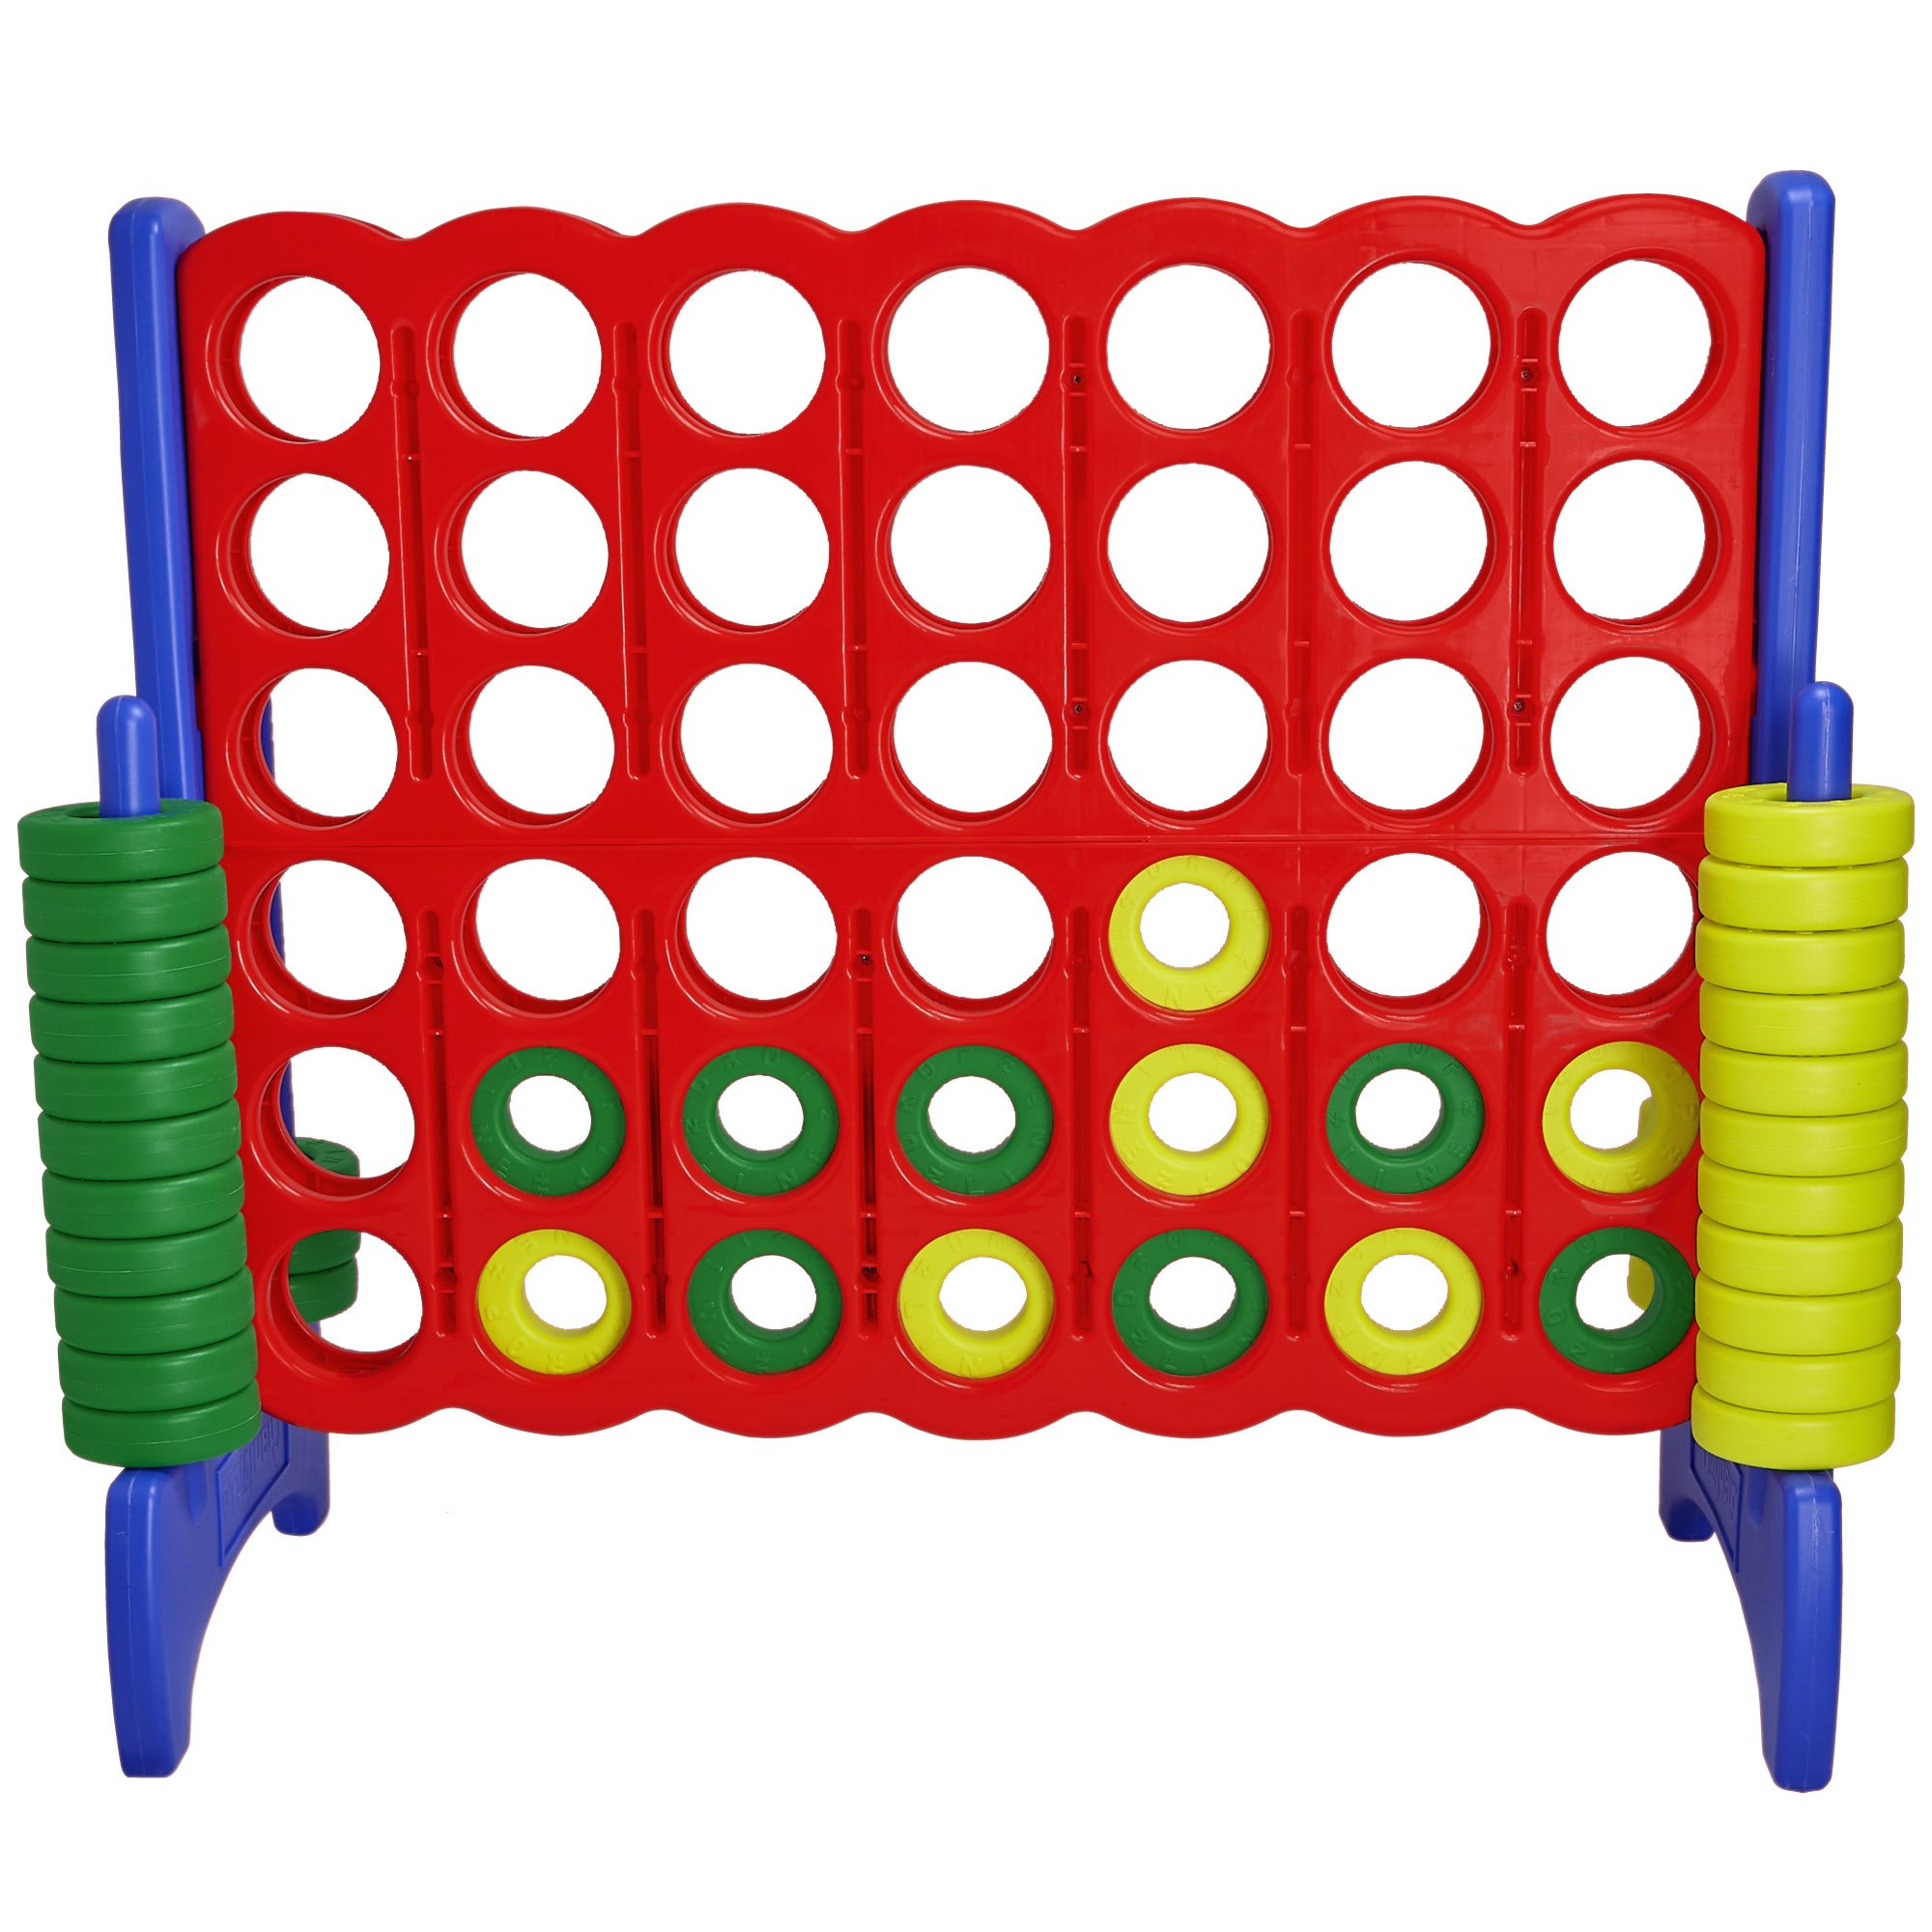 Giant 4 in a Row Connect Game - 4 Feet Wide by 3.5 Feet Tall Oversized Floor Activity for Kids and Adults - Jumbo Sized for Outdoor and Indoor Play - by Giantville, Blue/Red by Giantville (Image #4)